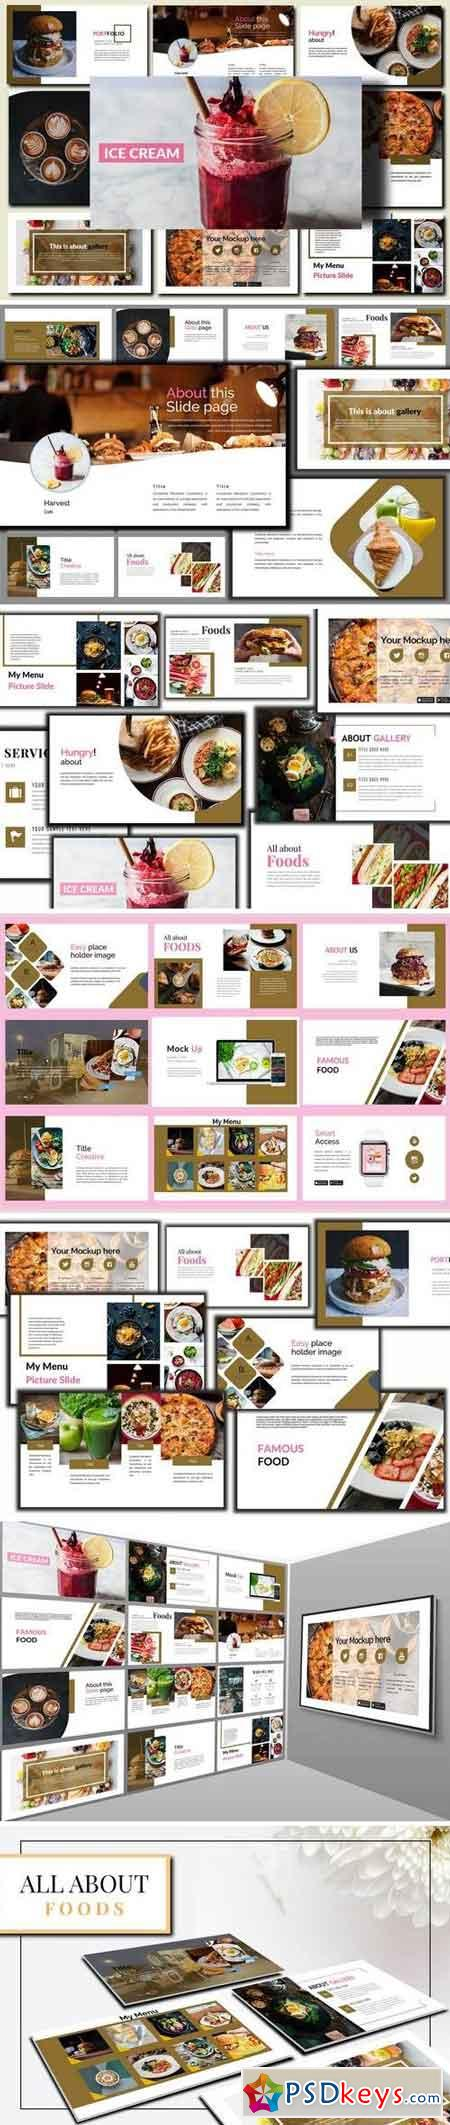 Delicious Food - Powerpoint, Keynote, Google Sliders Templates